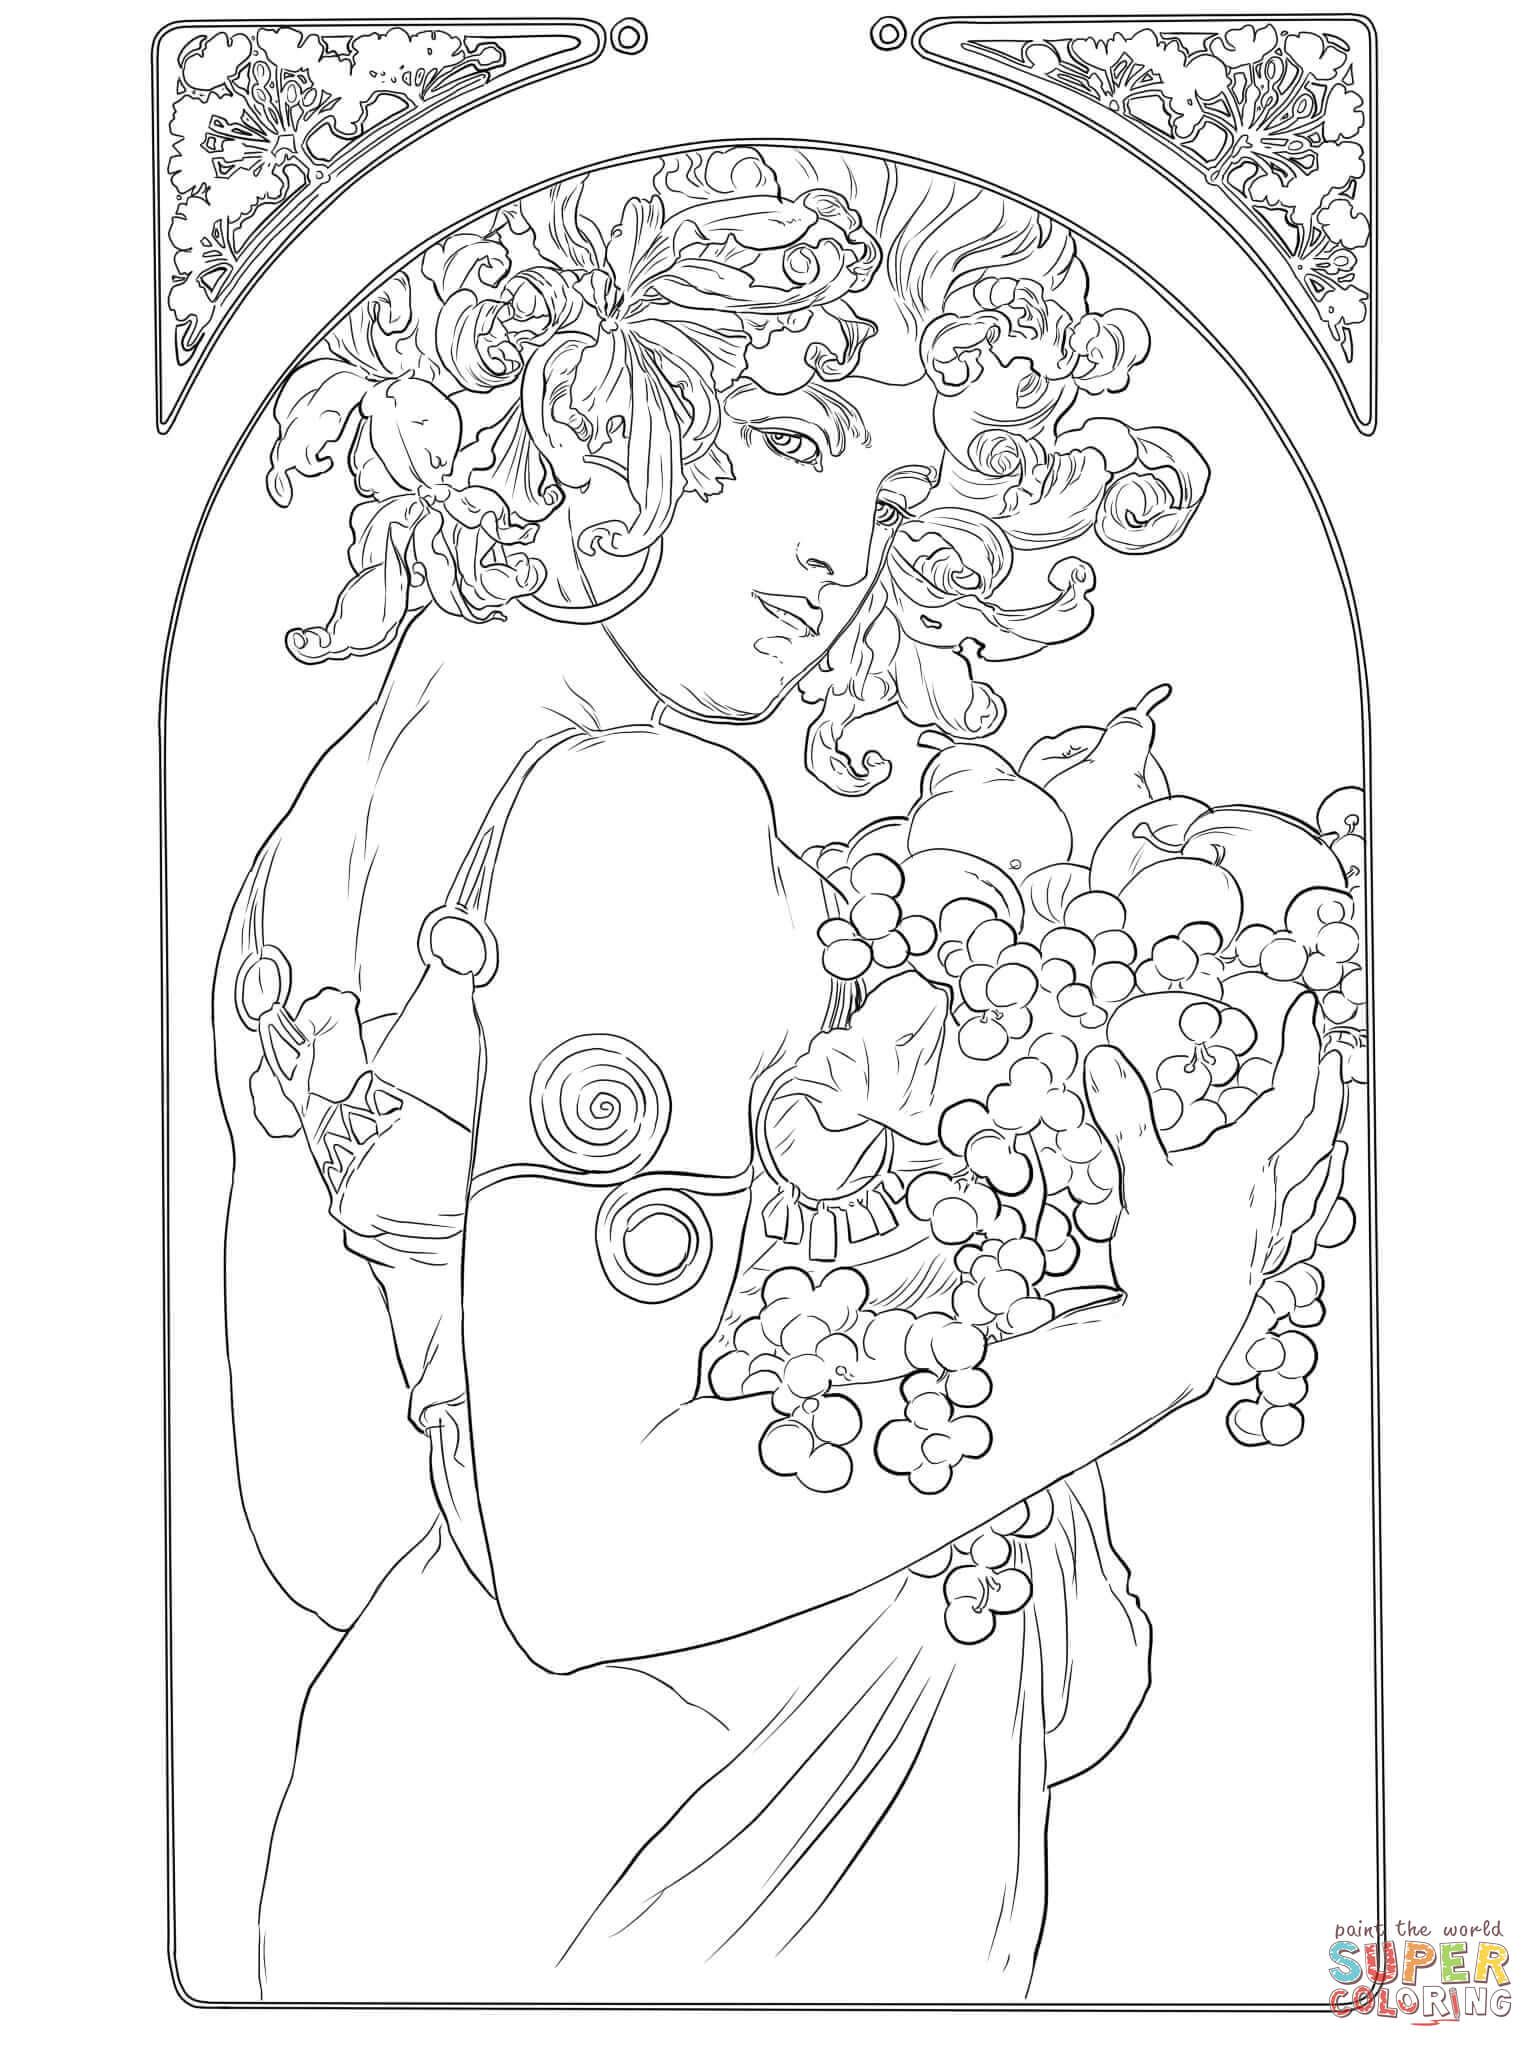 Fruit by Alphonse Mucha coloring